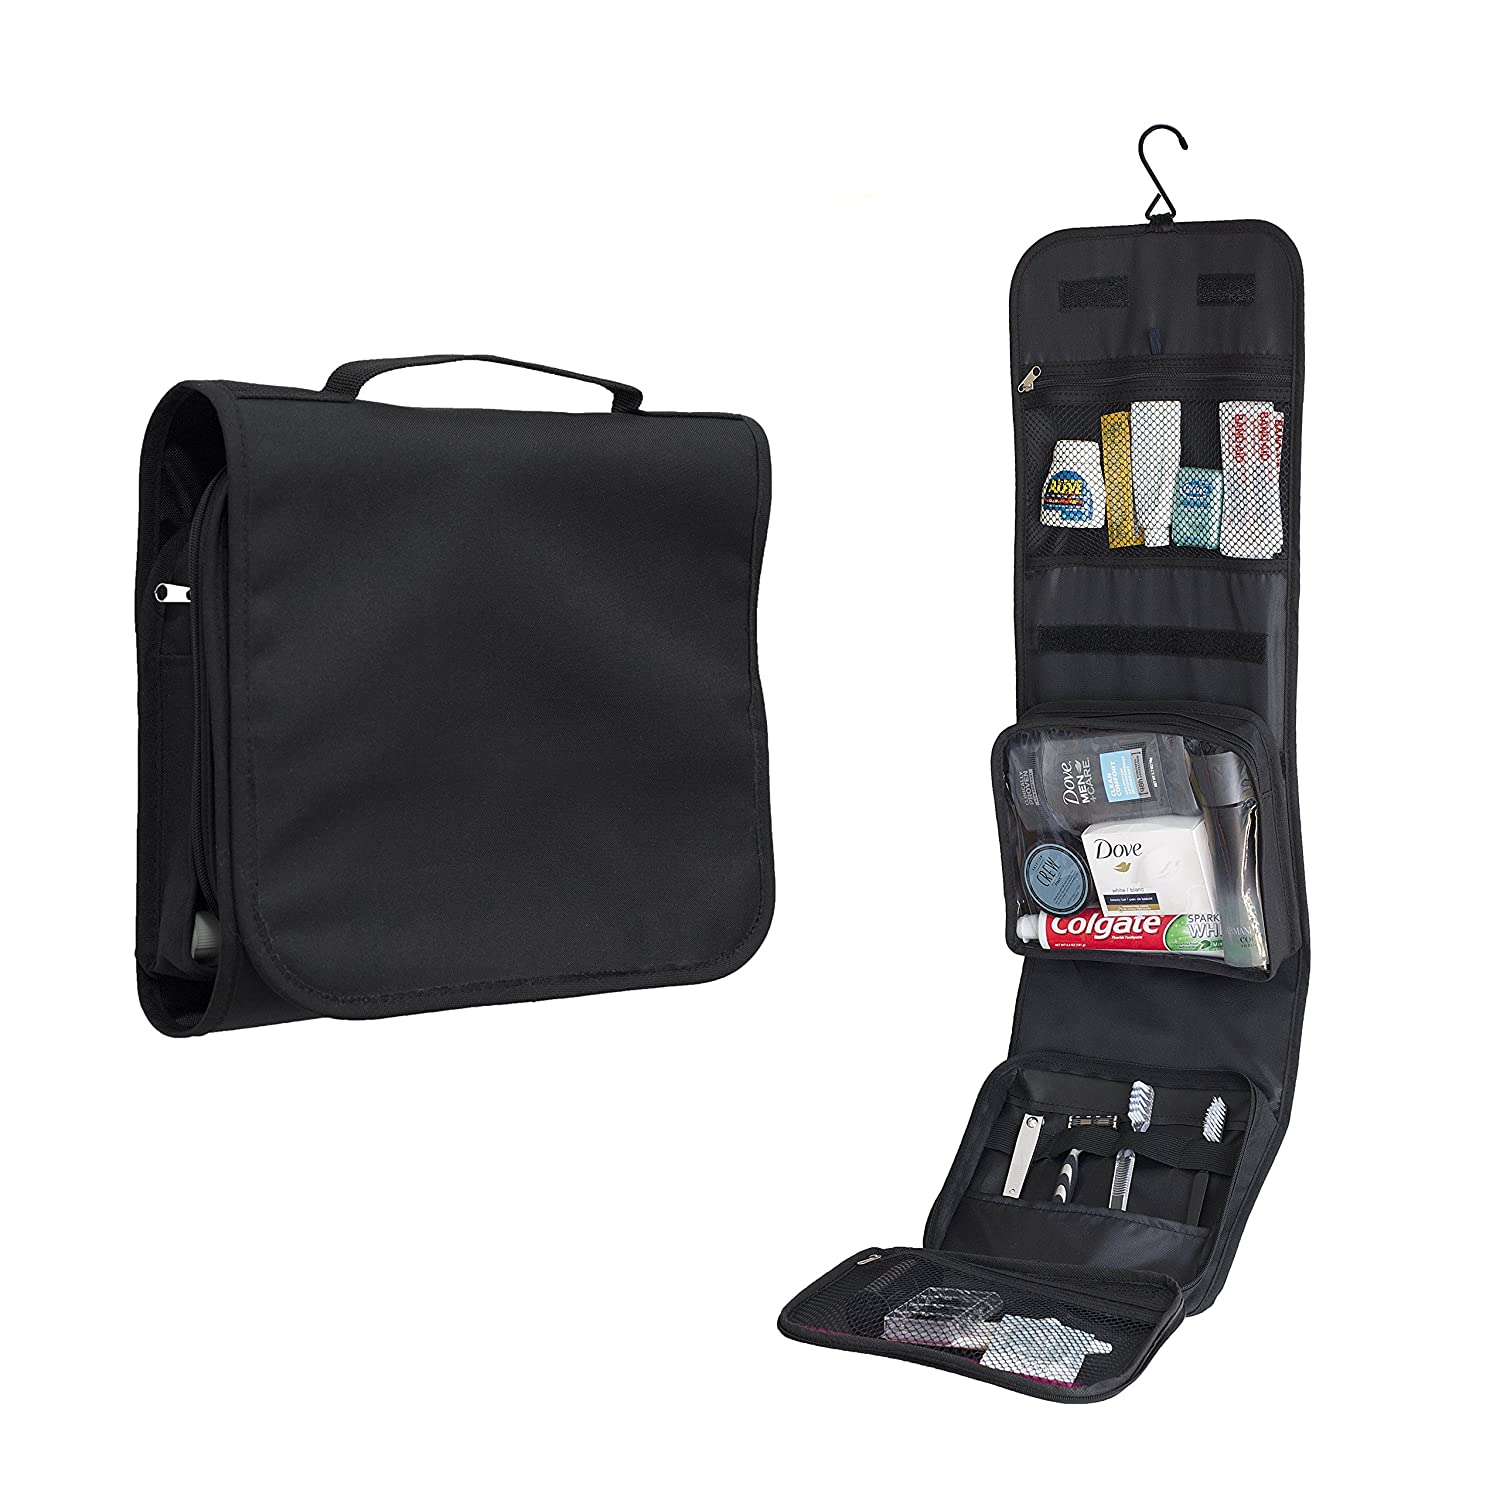 Hanging toiletry bag by Nomalite | Black folding travel wash bag for men & women / ladies with strong hook and large detachable clear compartment for makeup / liquids in flights. Ideal for travel. H001